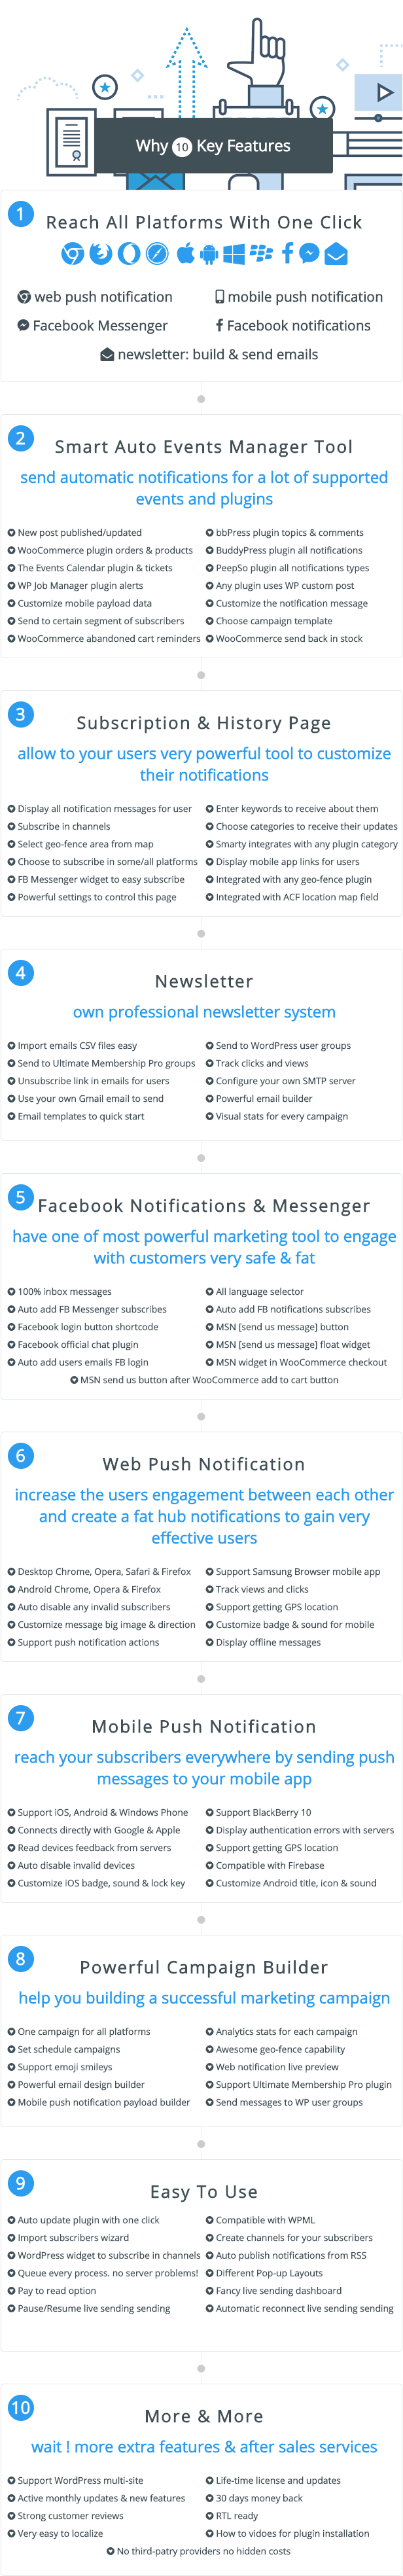 Smart Notification Wordpress Plugin. Web & Mobile Push, FB Messenger, FB Notifications & Newsletter. - 5